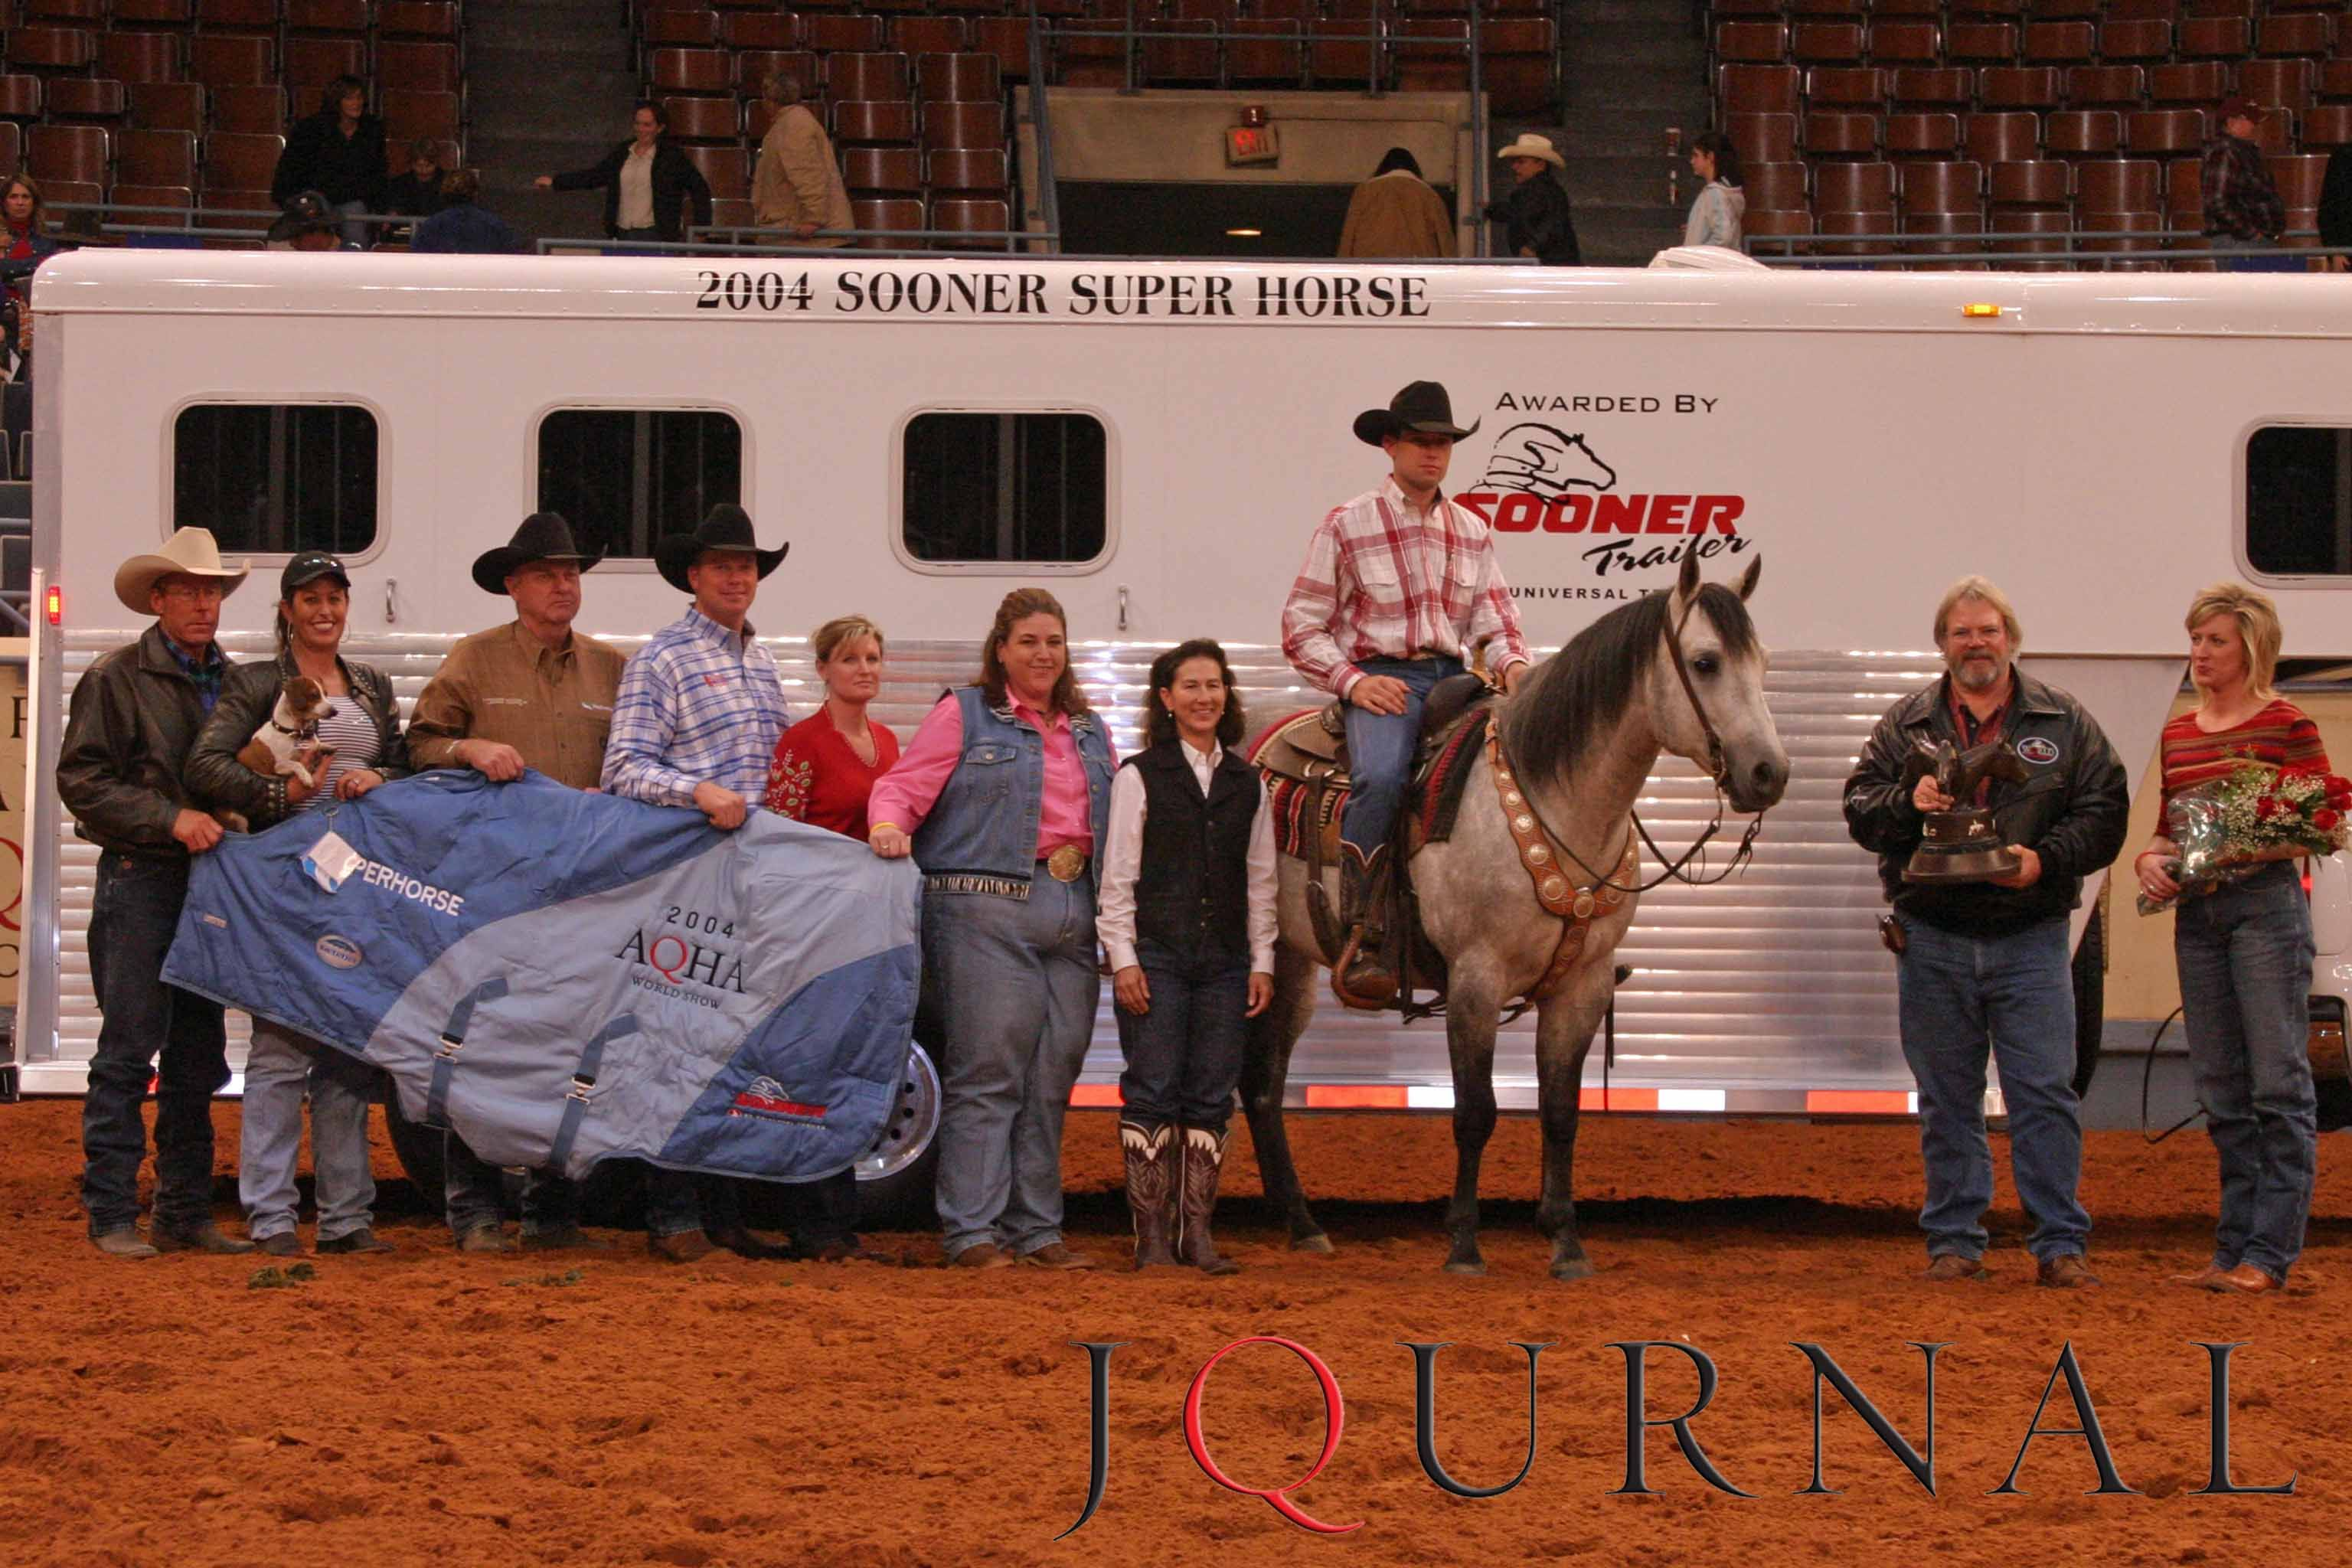 The 2004 Farnam Superhorse Award was presented to the 1997 AQHA stallion Real Gun, owned by the RT Stuart Ranch in Waurika, OK. Visit http://www.AQHA.com/showing for more great American Quarter Horse showing news. (Journal Photo)